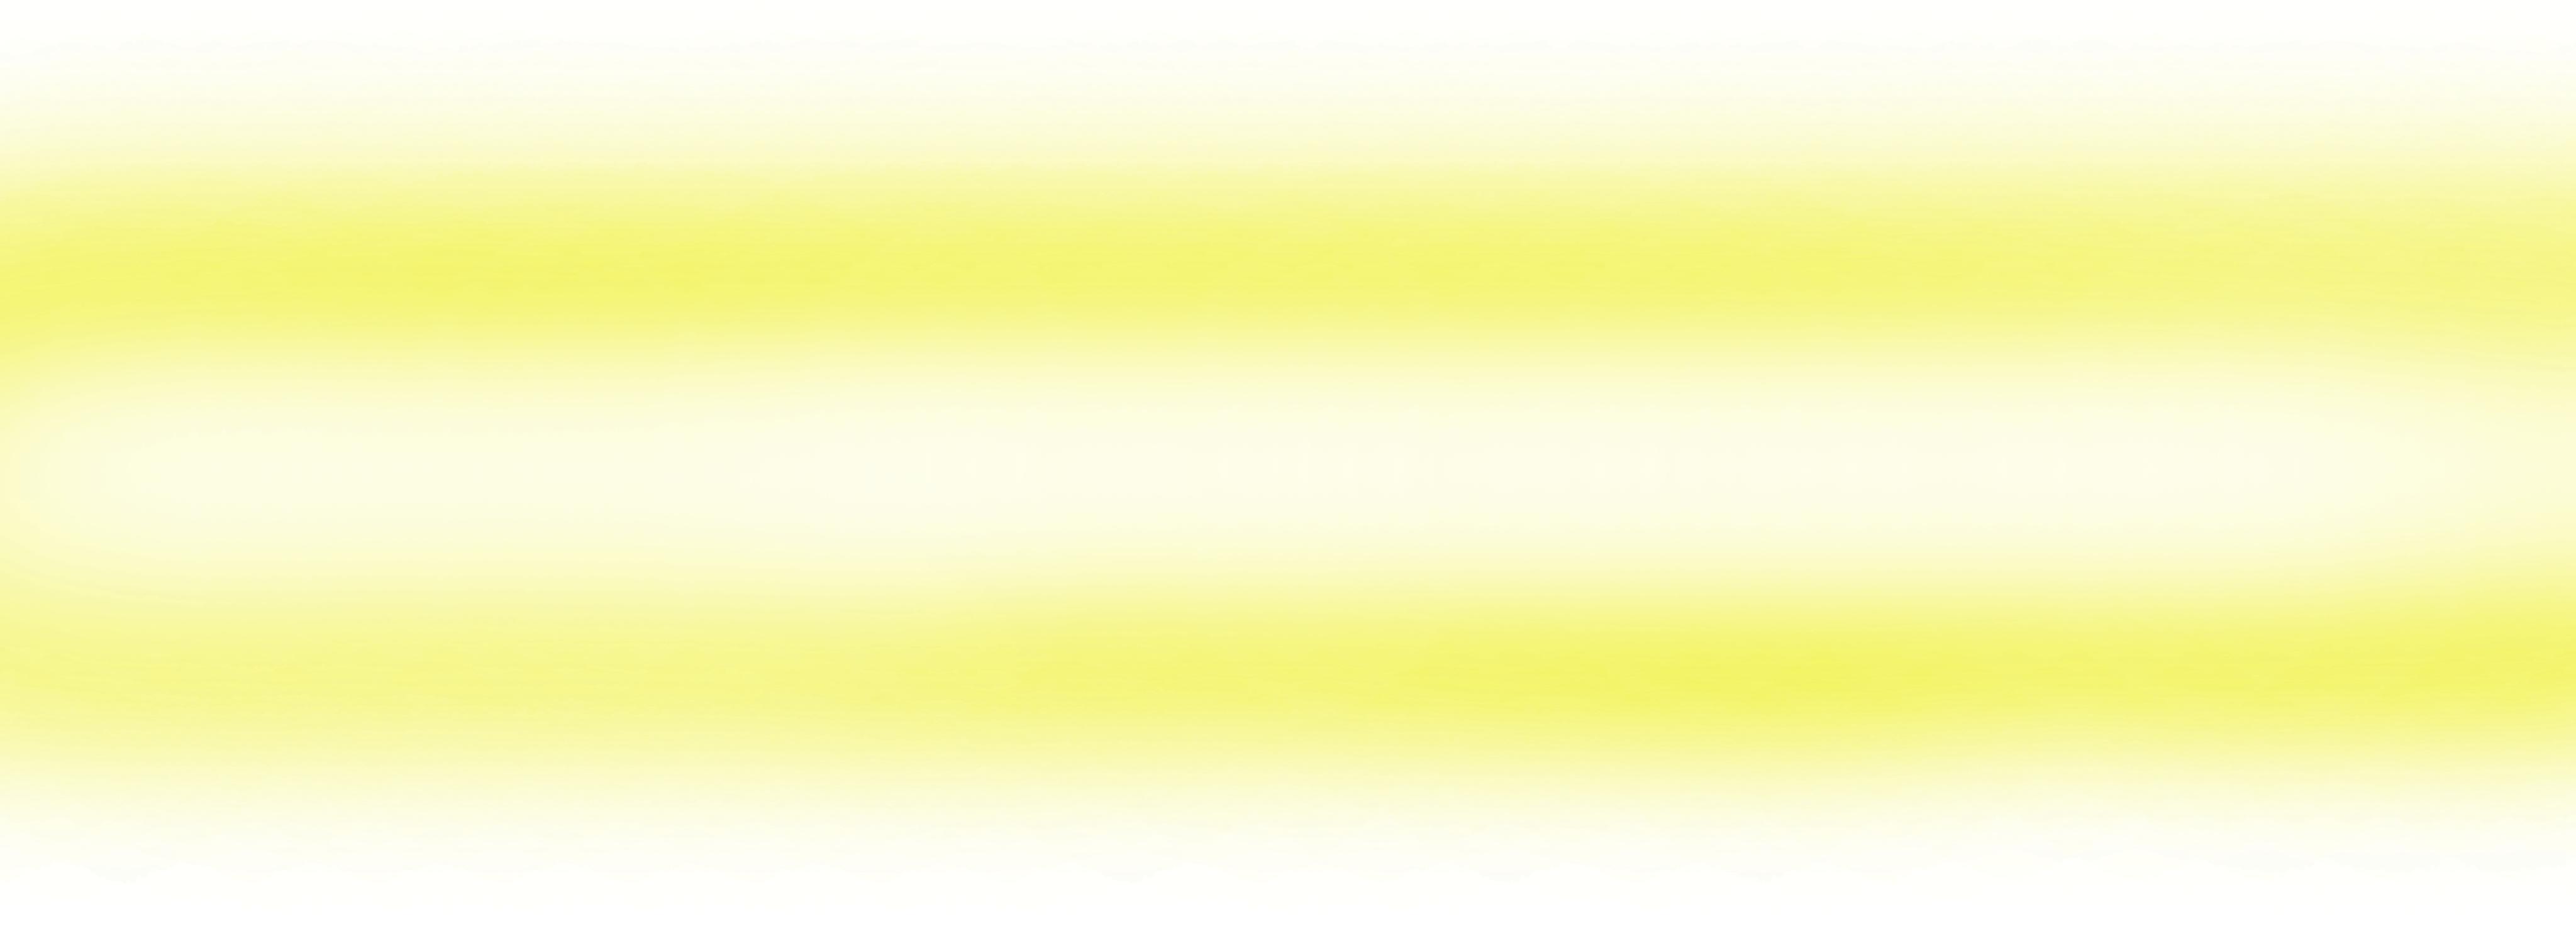 Yellow Laser Png By Antirex3000 On Deviantart You can use these free icons and png images for your photoshop design, documents, web sites, art projects or google presentations, powerpoint templates. yellow laser png by antirex3000 on